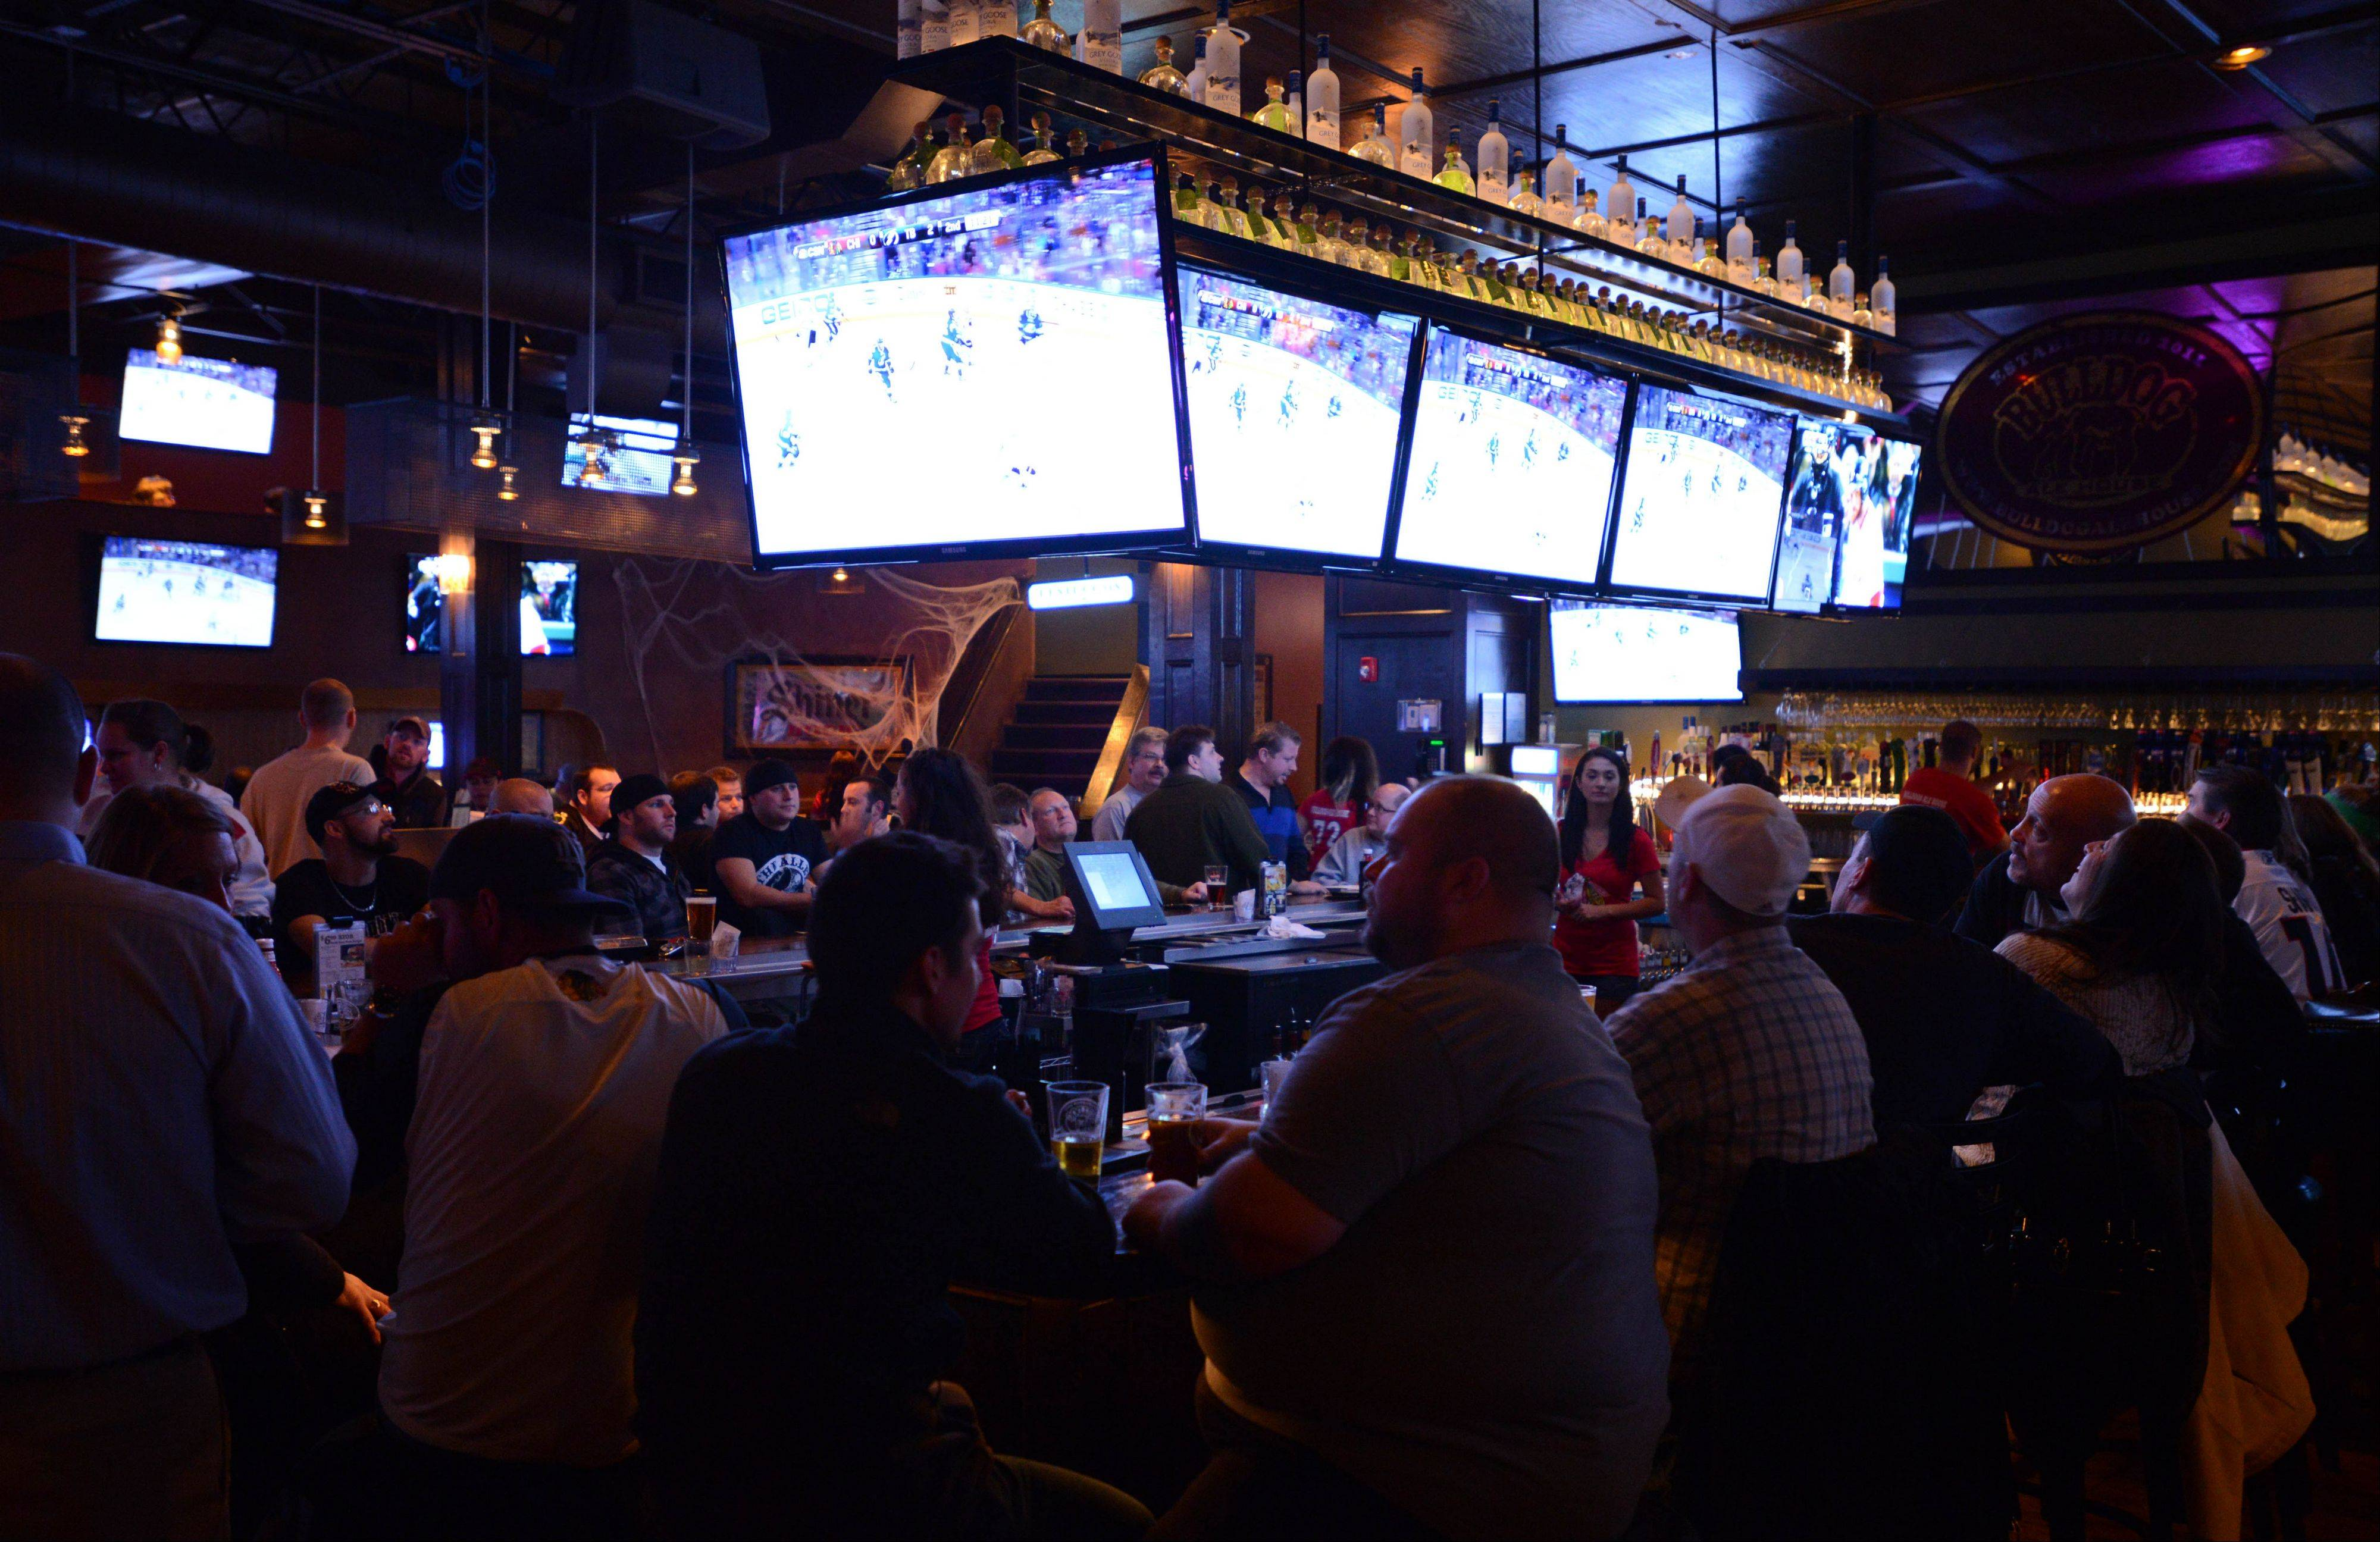 Bulldog Ale House in Roselle has 72 beers on tap, plus plenty of other drink options.